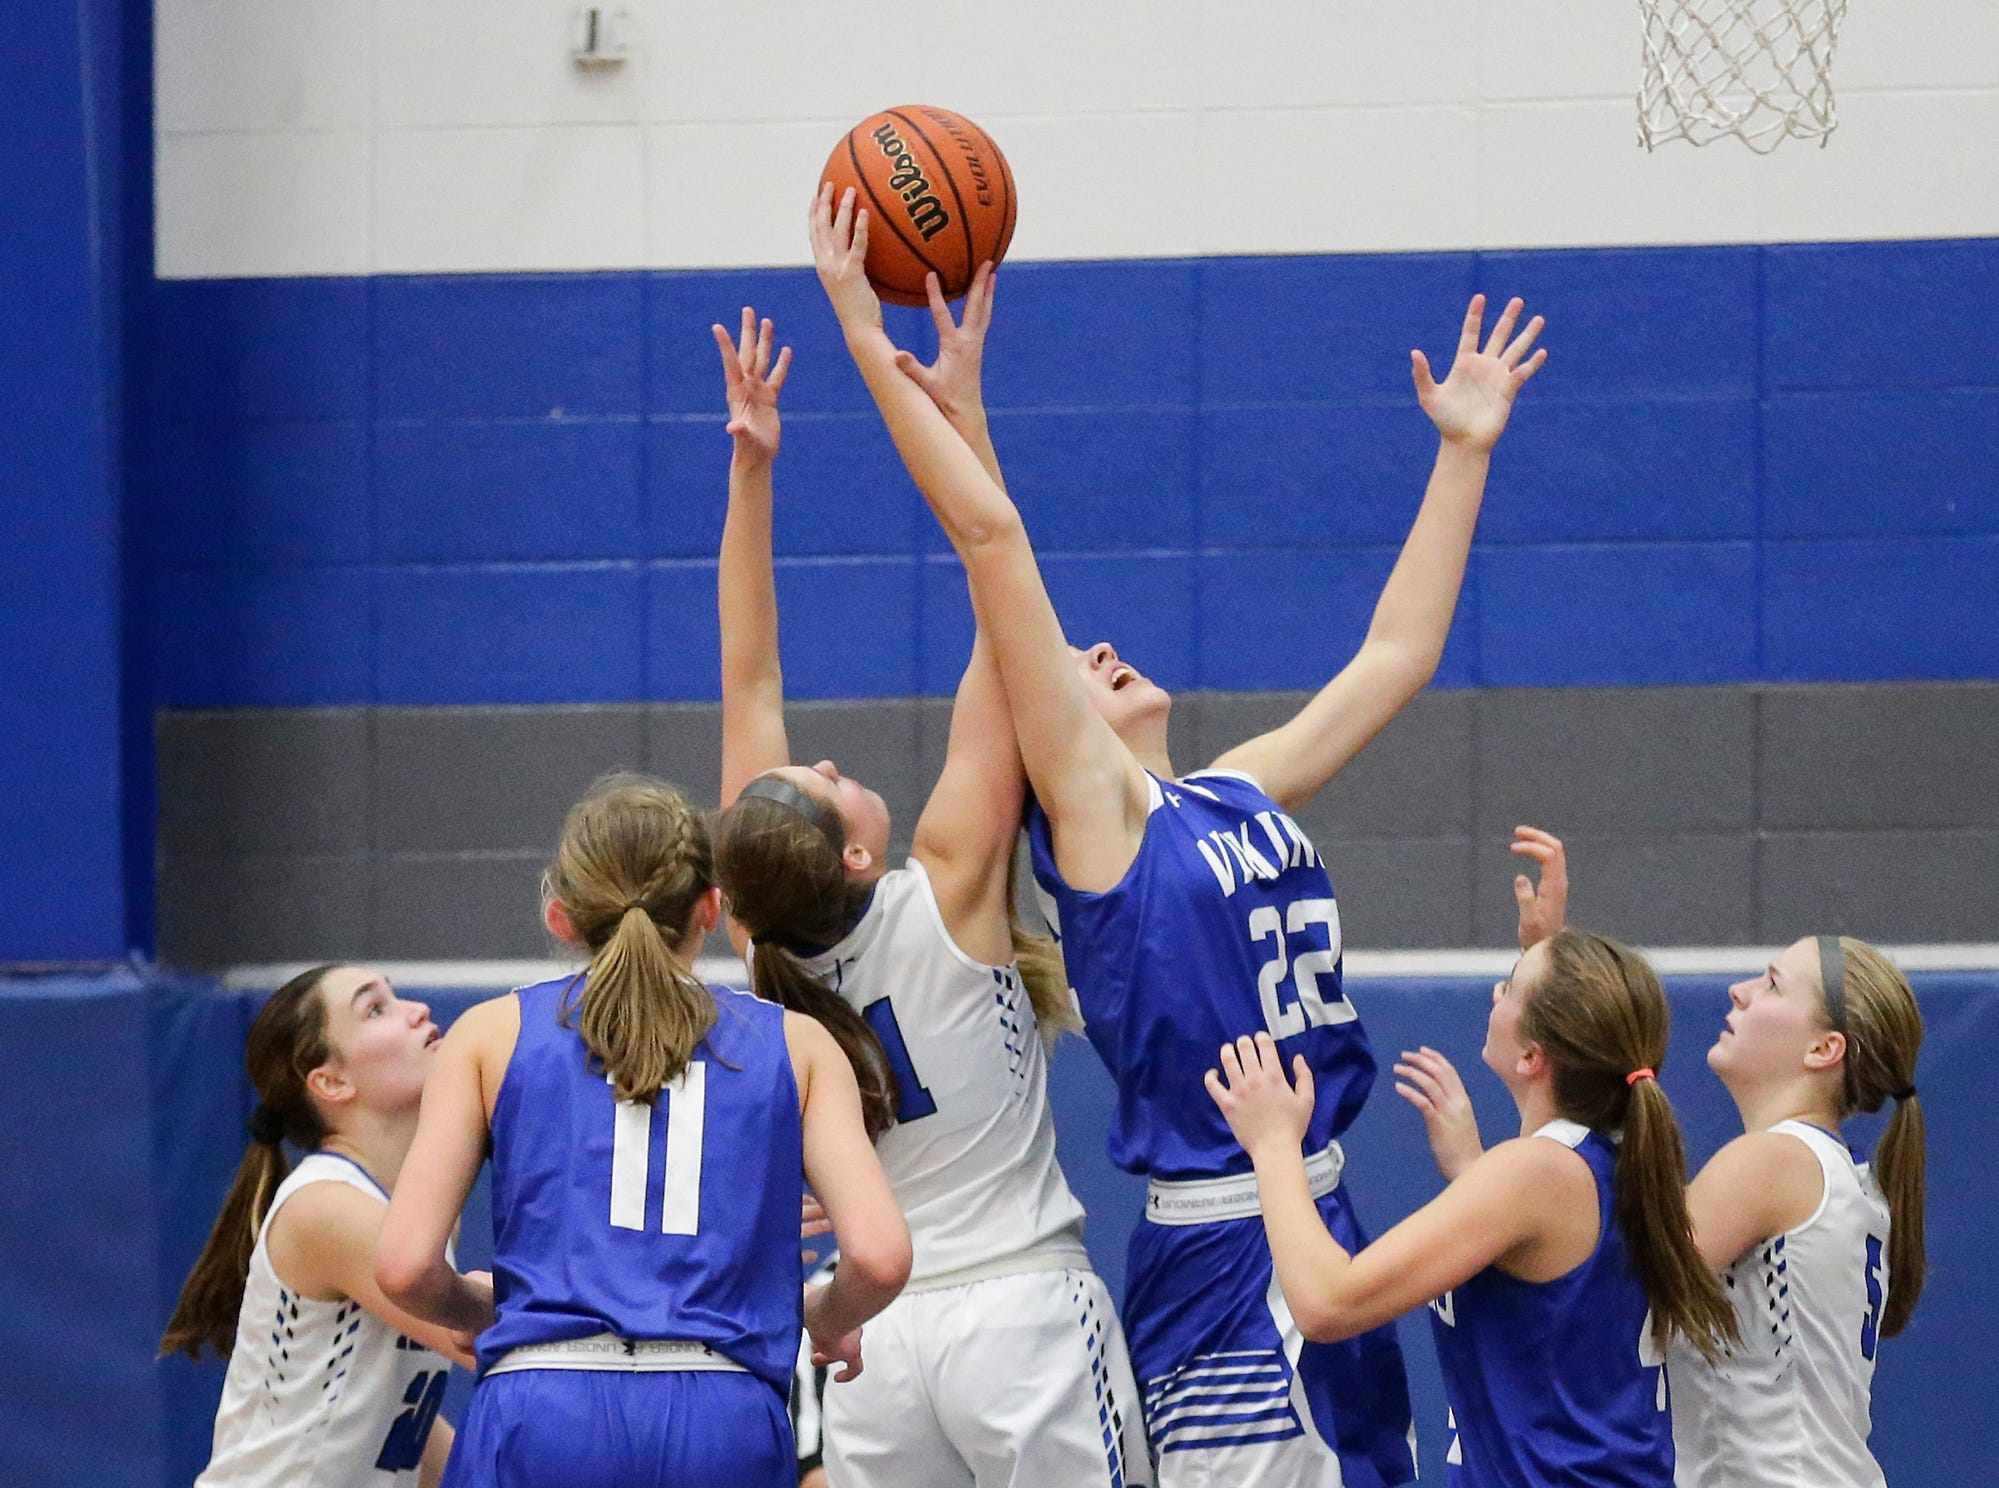 St. Mary's Springs Academy girls basketball's Jennifer Chatterton and Winnebago Lutheran Academy's Kaylee Frey battle for a rebound during their game Tuesday, December 18, 2018 in Fond du Lac. Winnebago Lutheran Academy won the game 58-54. Doug Raflik/USA TODAY NETWORK-Wisconsin